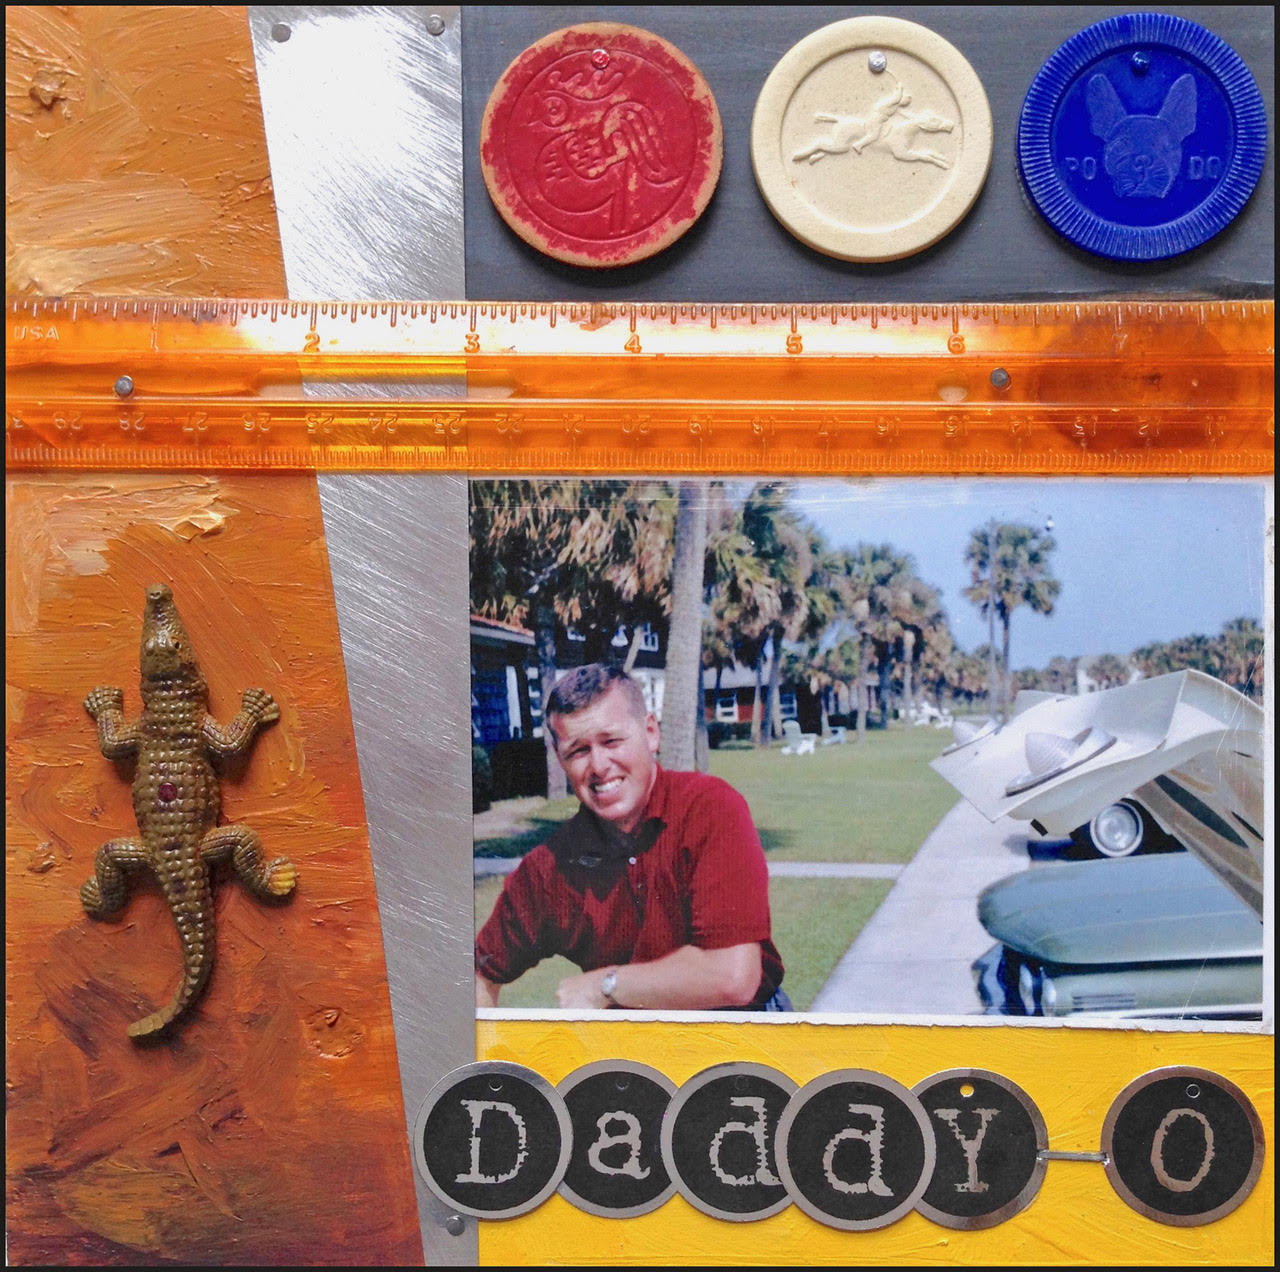 """Daddy-O"" by Patrick Donley, 8x8in, mixed media on wood (2015)"